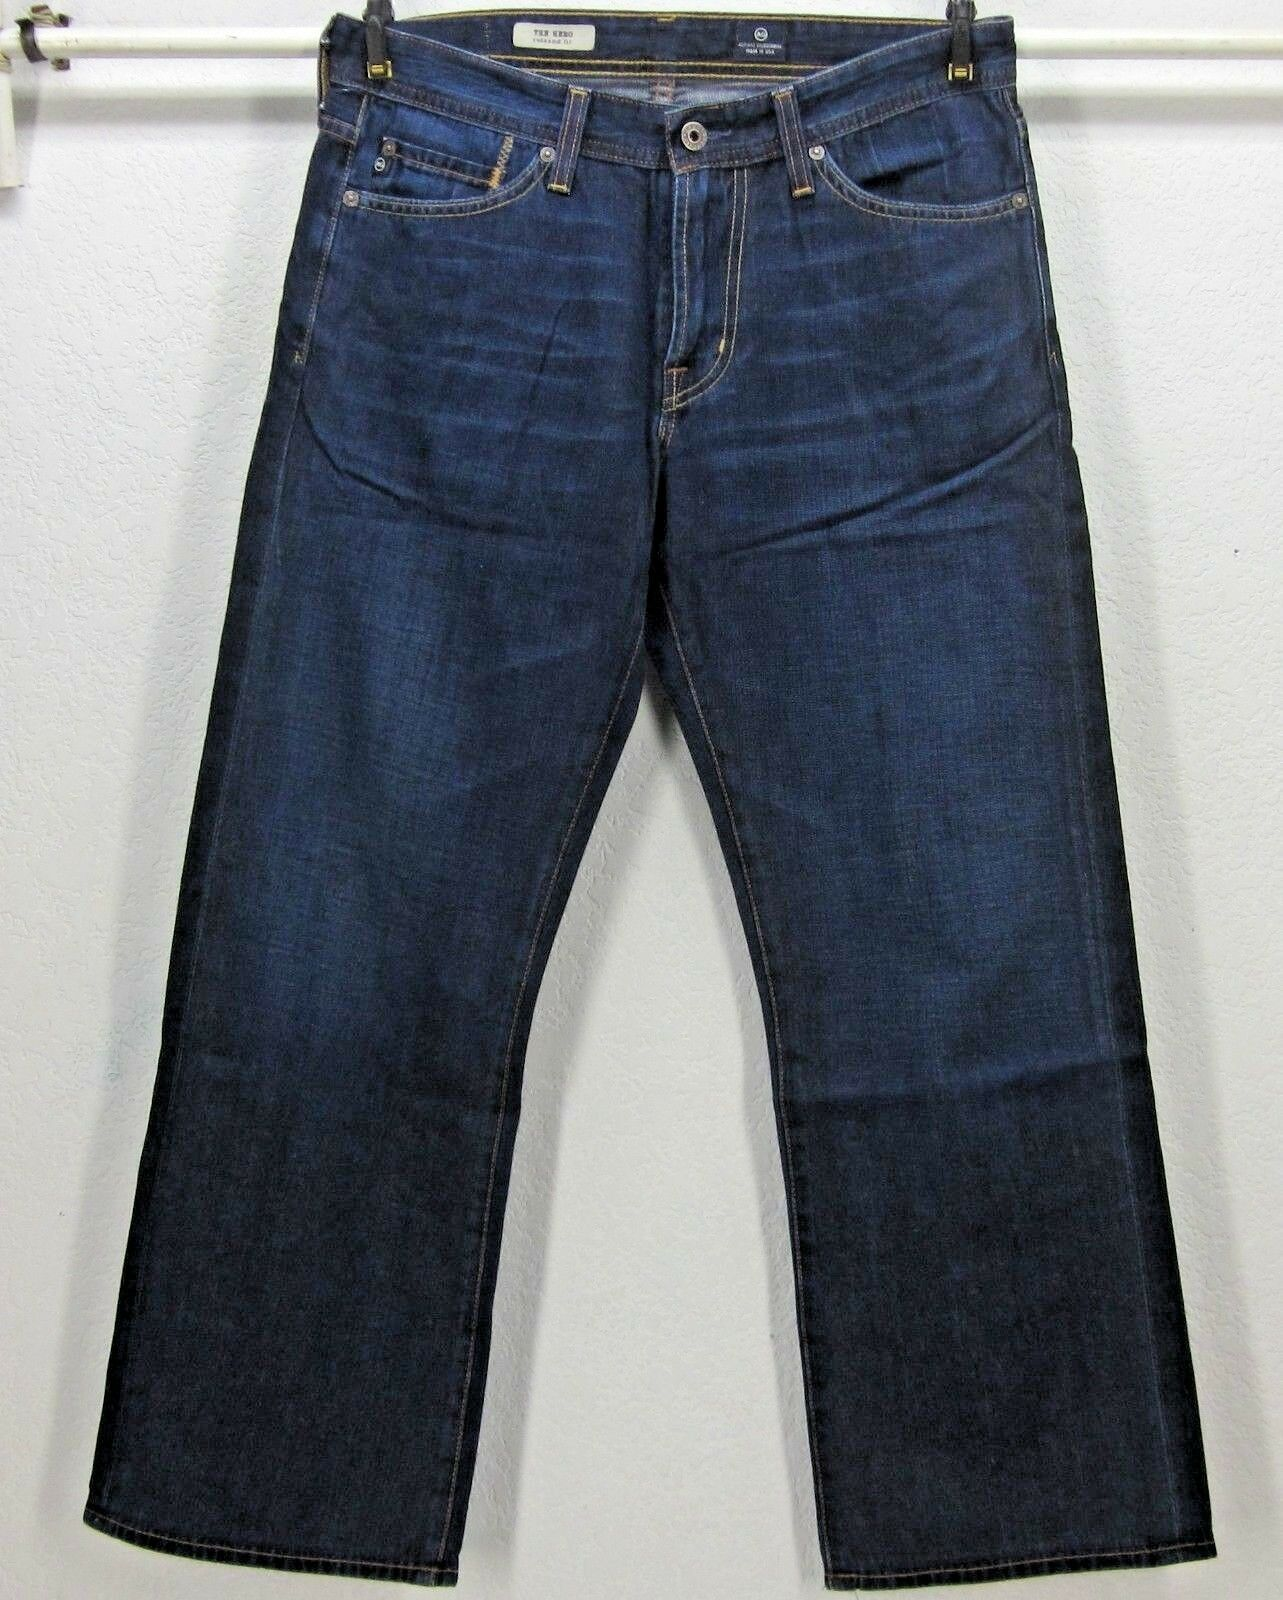 AG ADRIANO goldSCHMIED THE HERO Relaxed Fit Dark bluee Jeans W30 L28 USA STRAIGHT